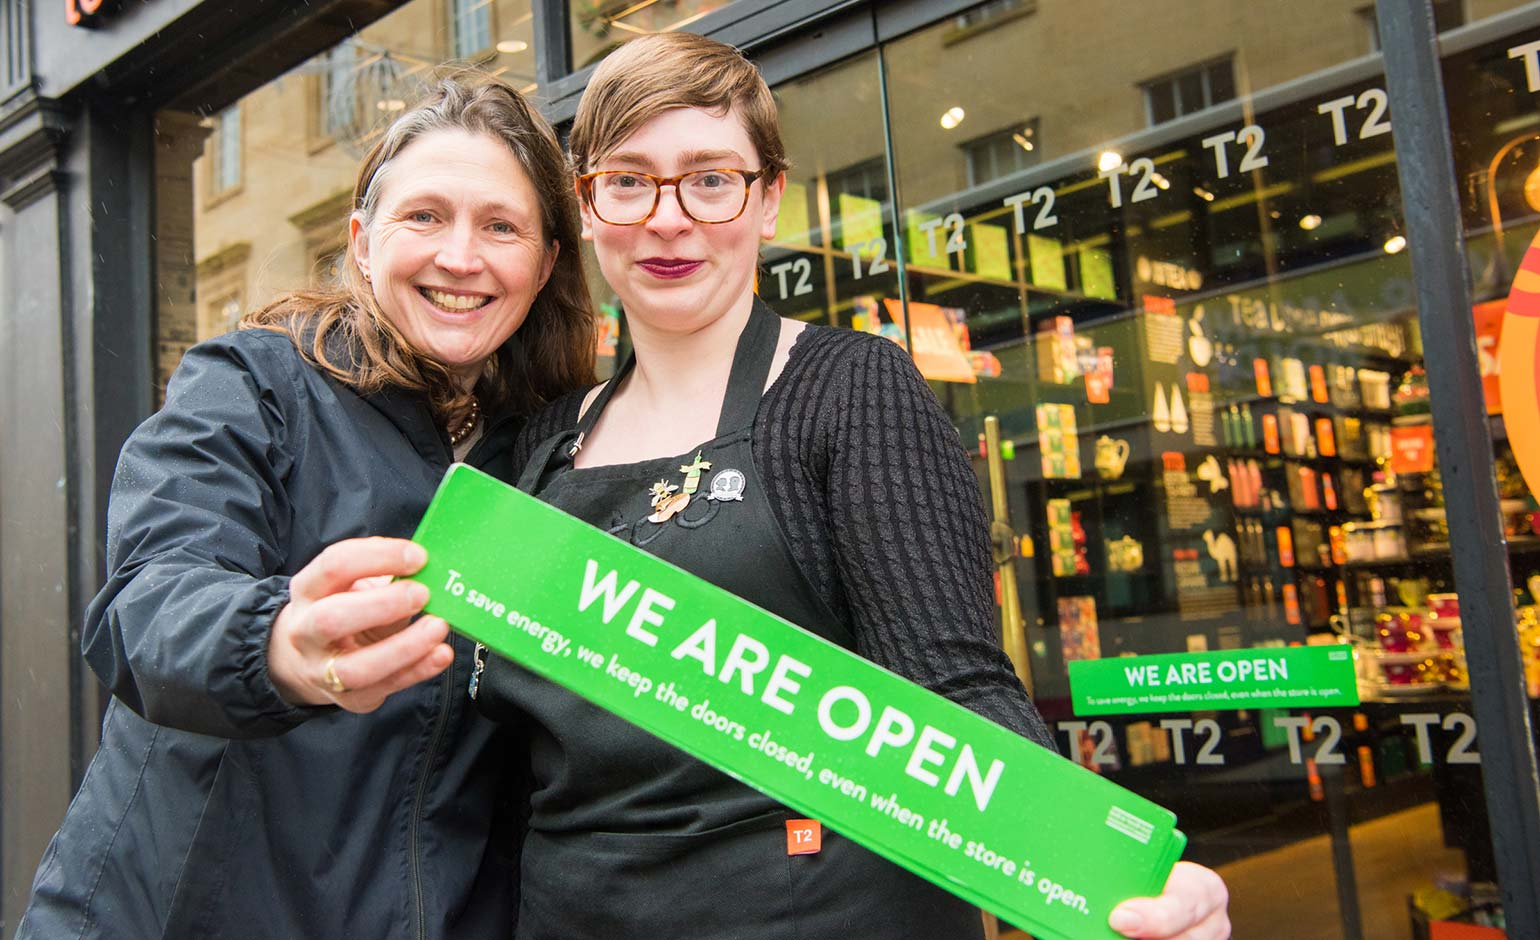 New campaign to encourage local shops and businesses to 'shut that door'